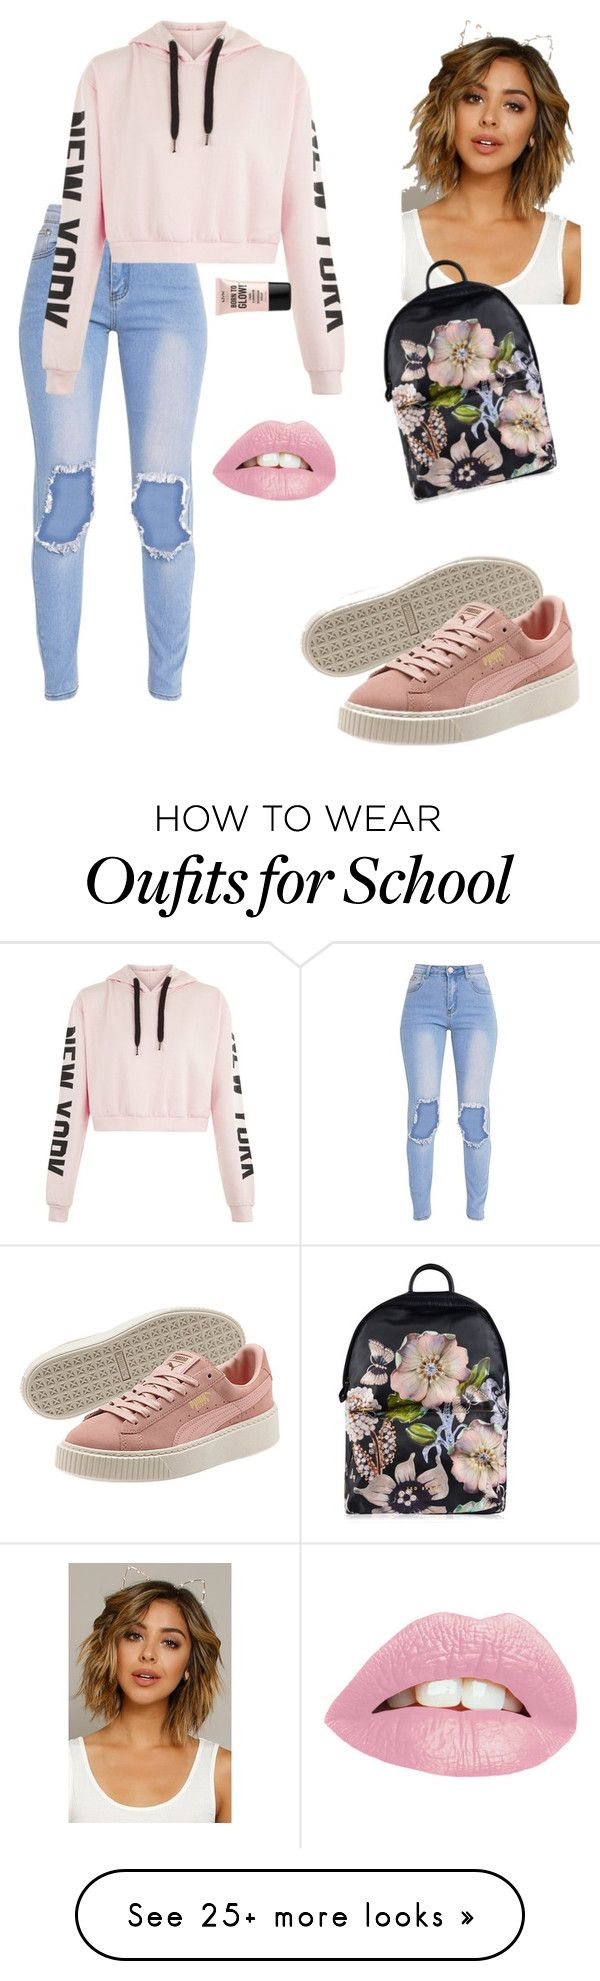 """""""Just School"""" by skittlecutie716 on Polyvore featuring Ted Baker and NYX"""